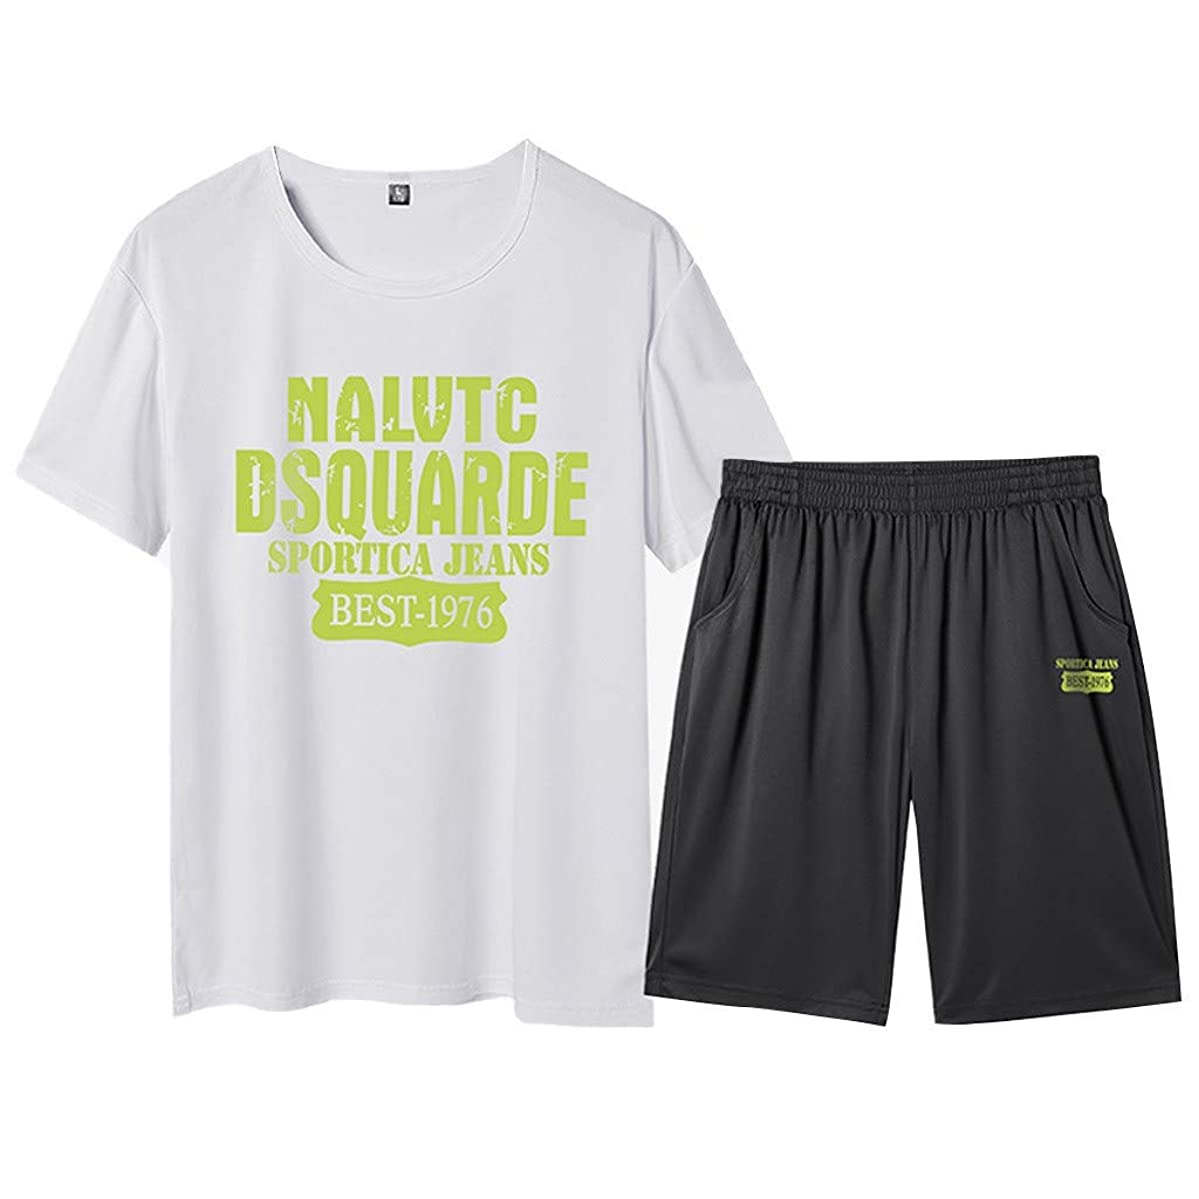 Men's Casual 2 Piece Outfits Short Sleeve and Shorts Running Jogging Athletic Sports Set Summer Tracksuits